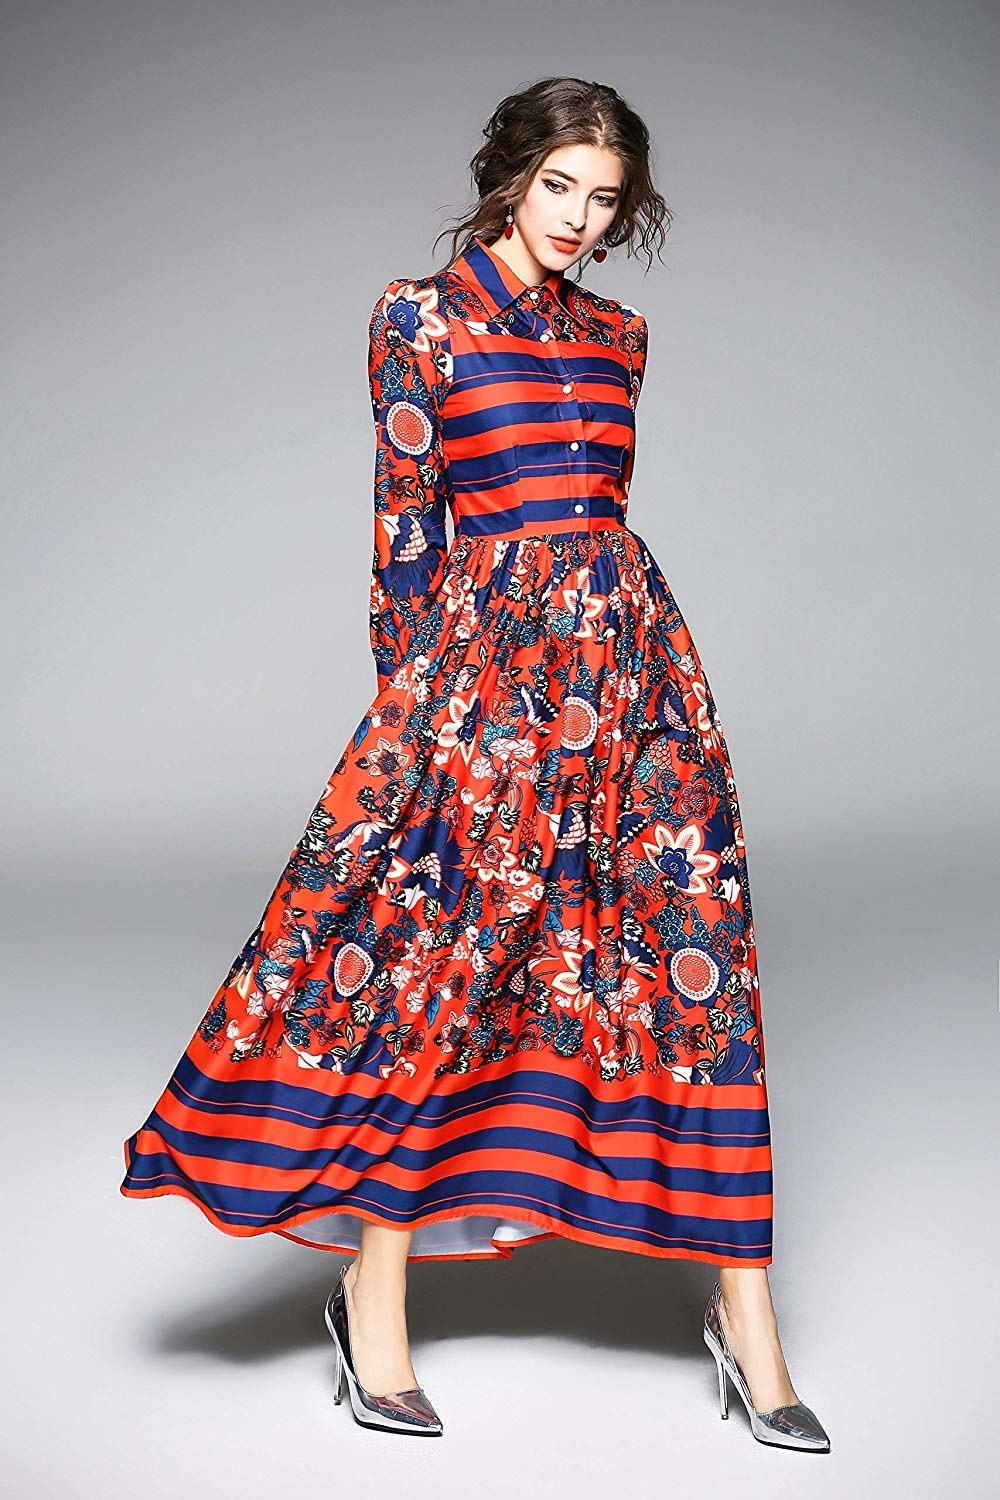 4bc6150812d And a long printed shirtdress I m amazed didn t just come straight off a  runway. You say